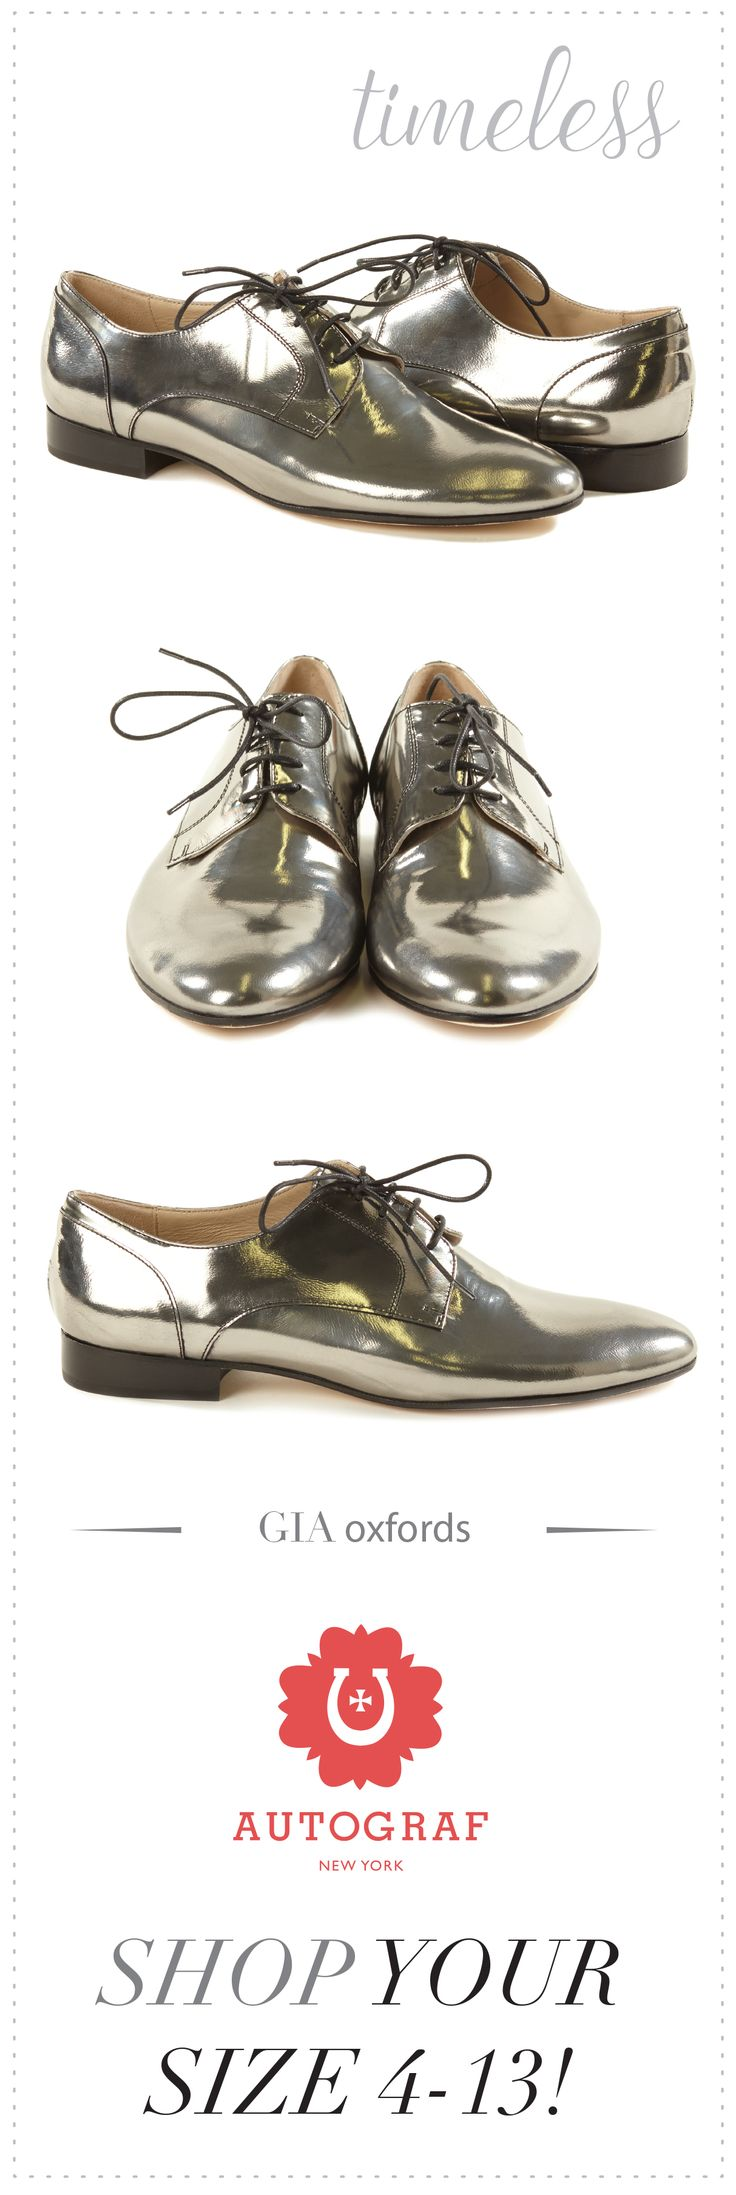 Women's Silver Oxfords. Fall 2015 Italian designer oxford shoes handmade to fit size 5,6,7,8,9,10,11,12,13. Ladies flat oxford shoes in pewter mirror metallic. Plus size shoes for women.